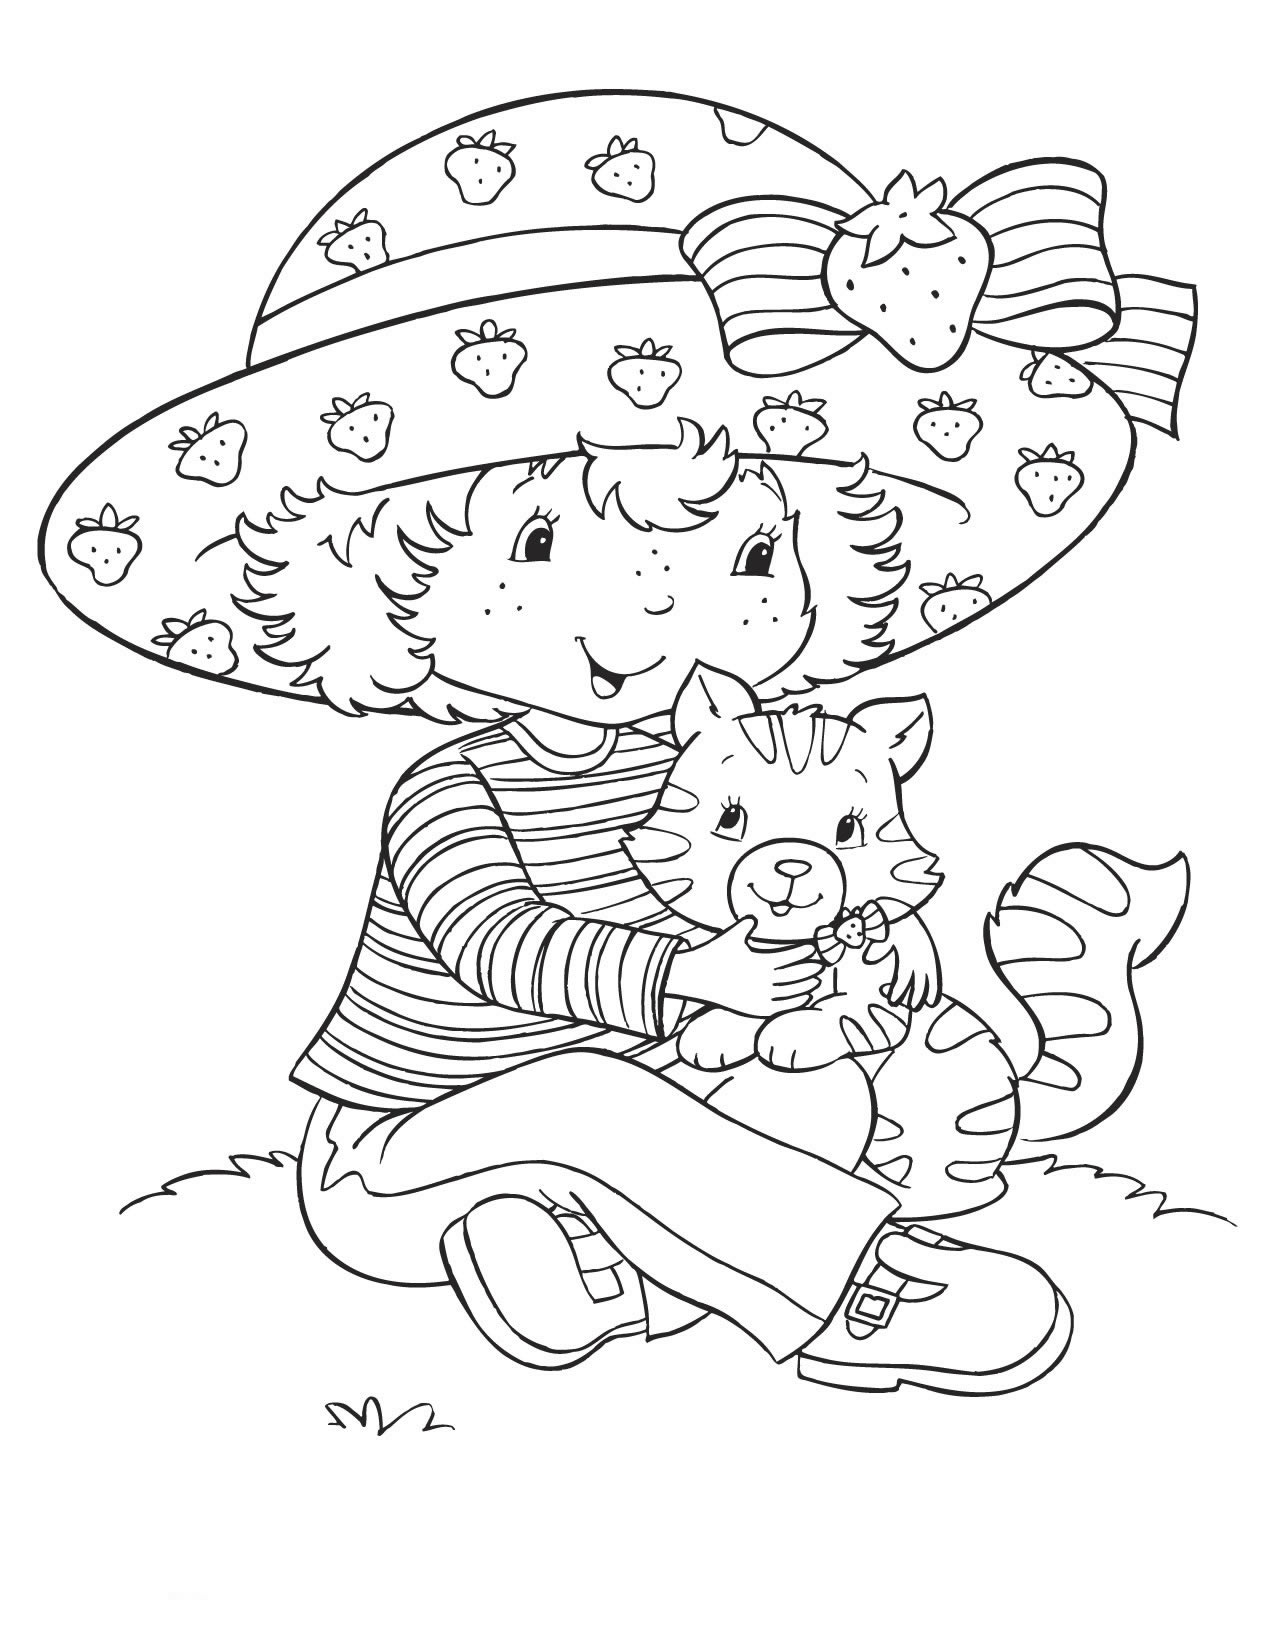 strawberry shortcake coloring pages for kids get this cute strawberry shortcake coloring pages to print shortcake for pages kids coloring strawberry